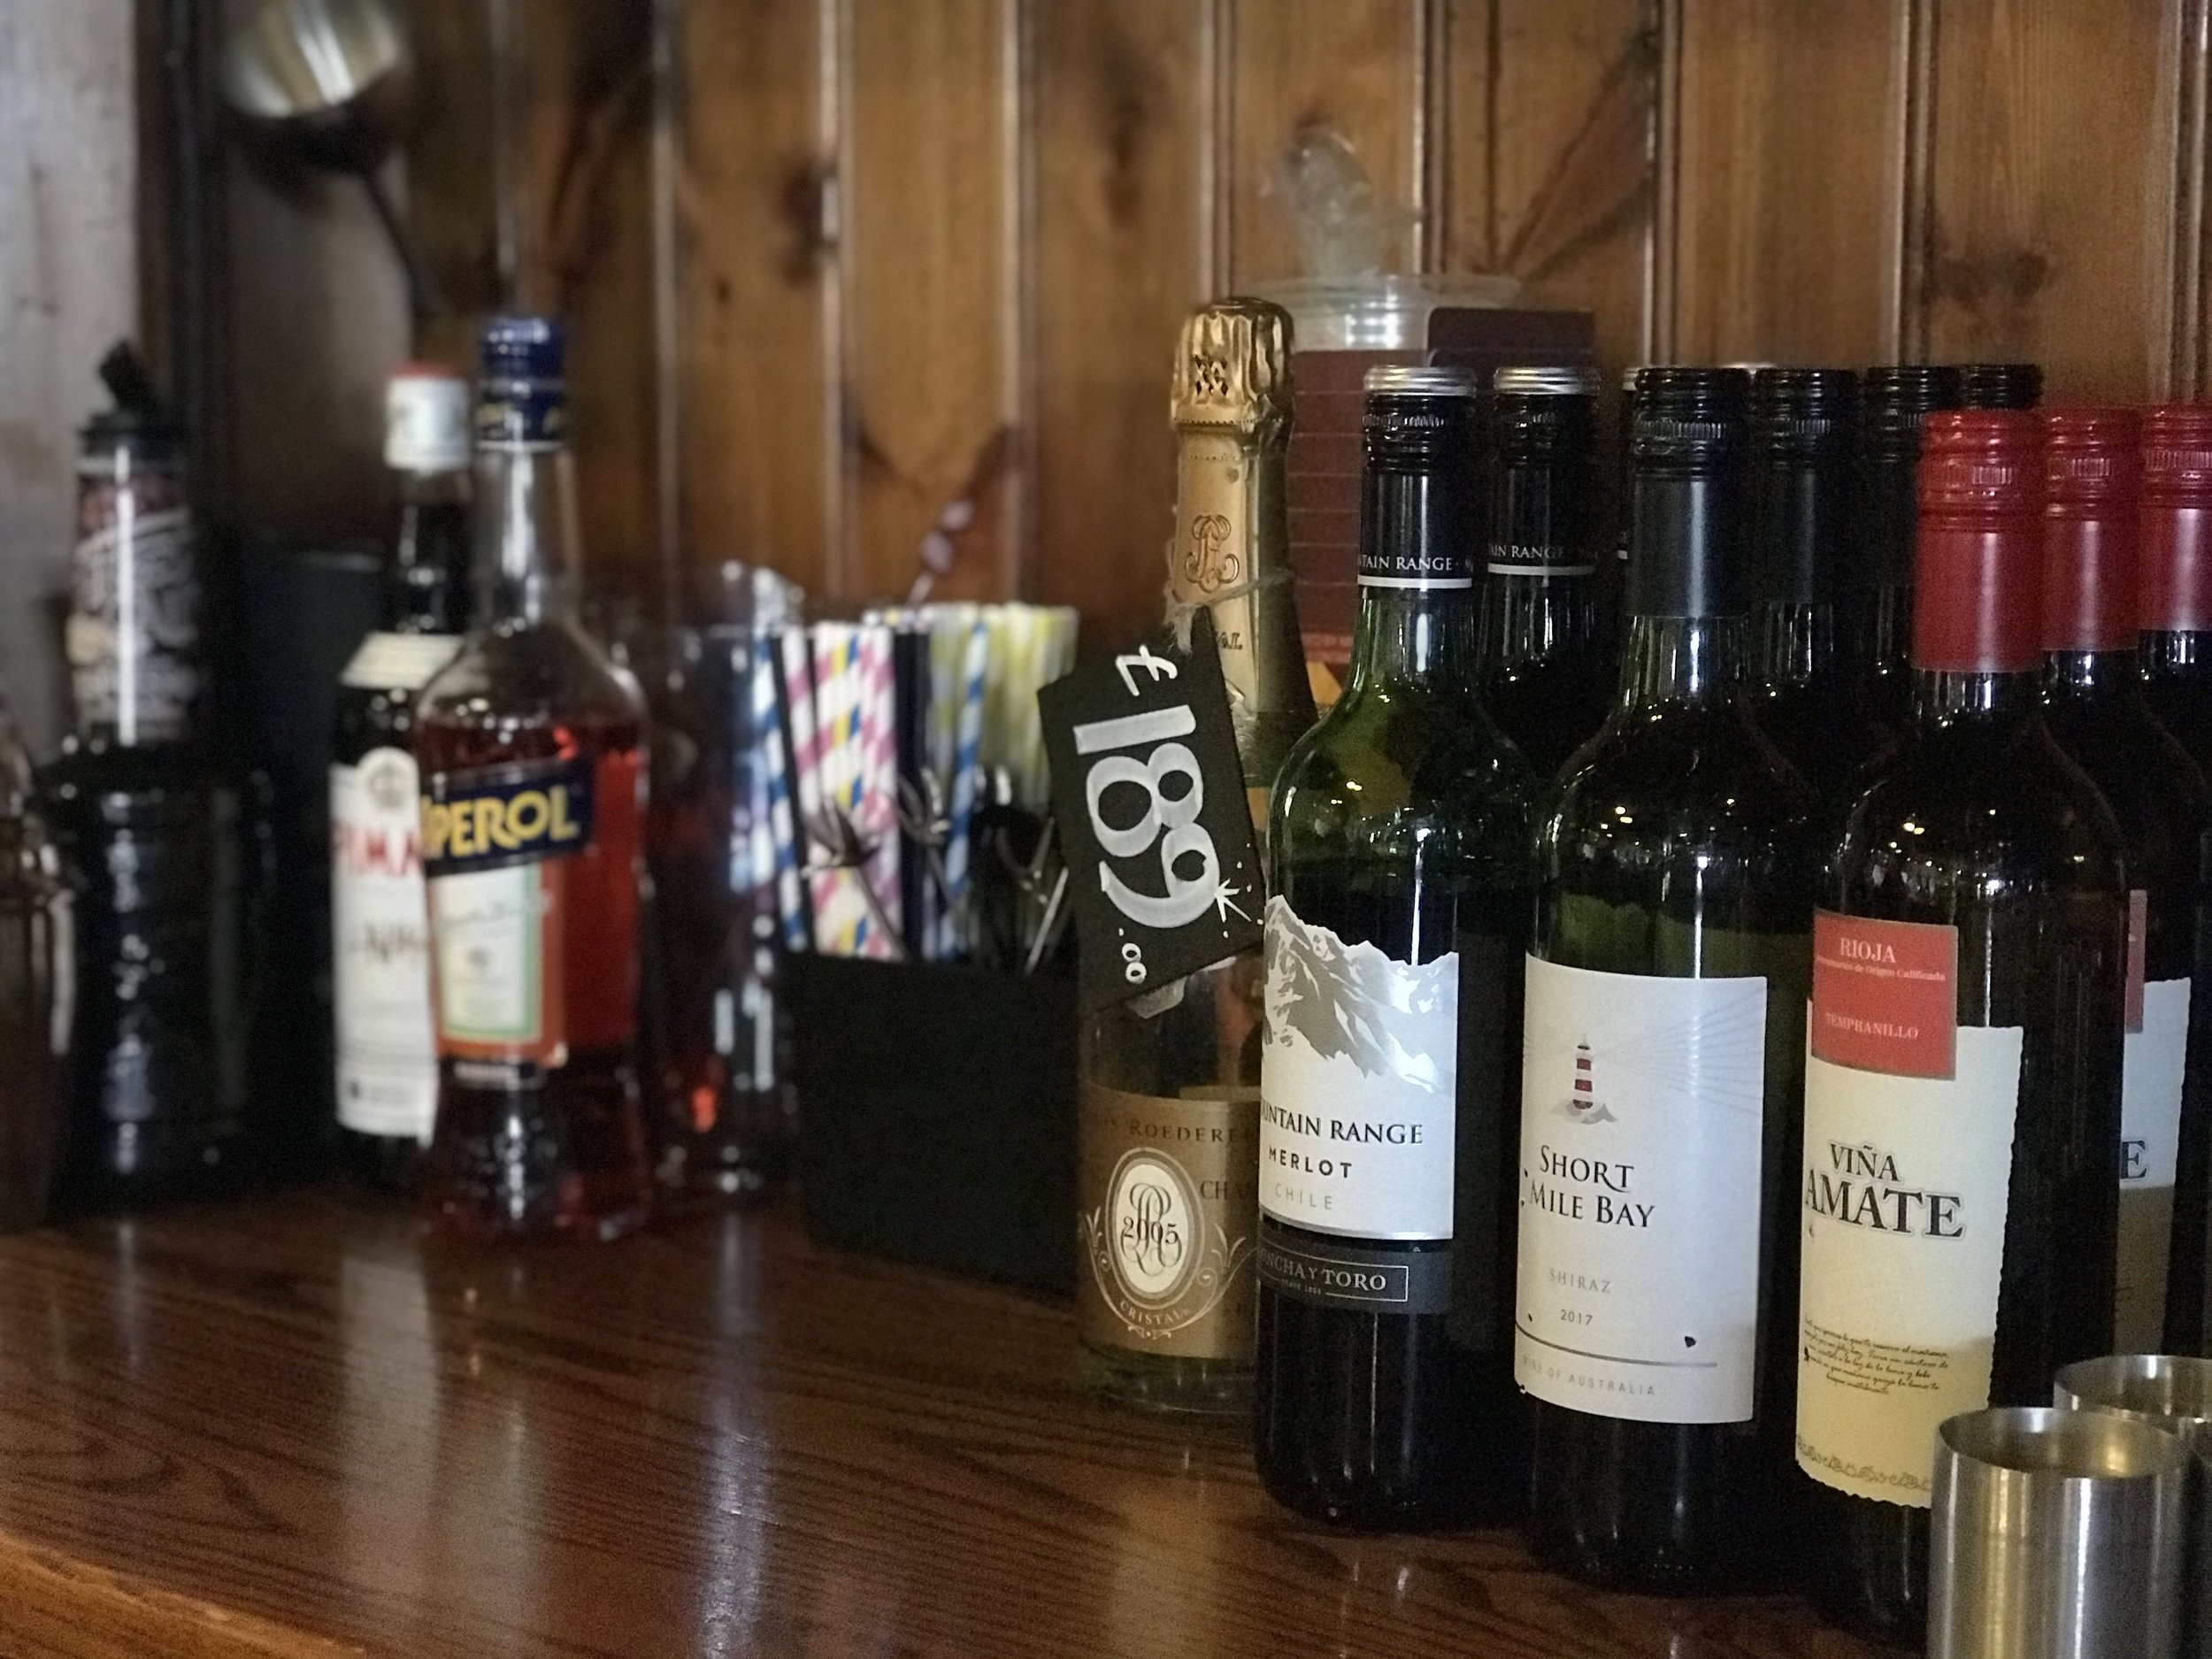 Wines by the glass and many more by the bottle